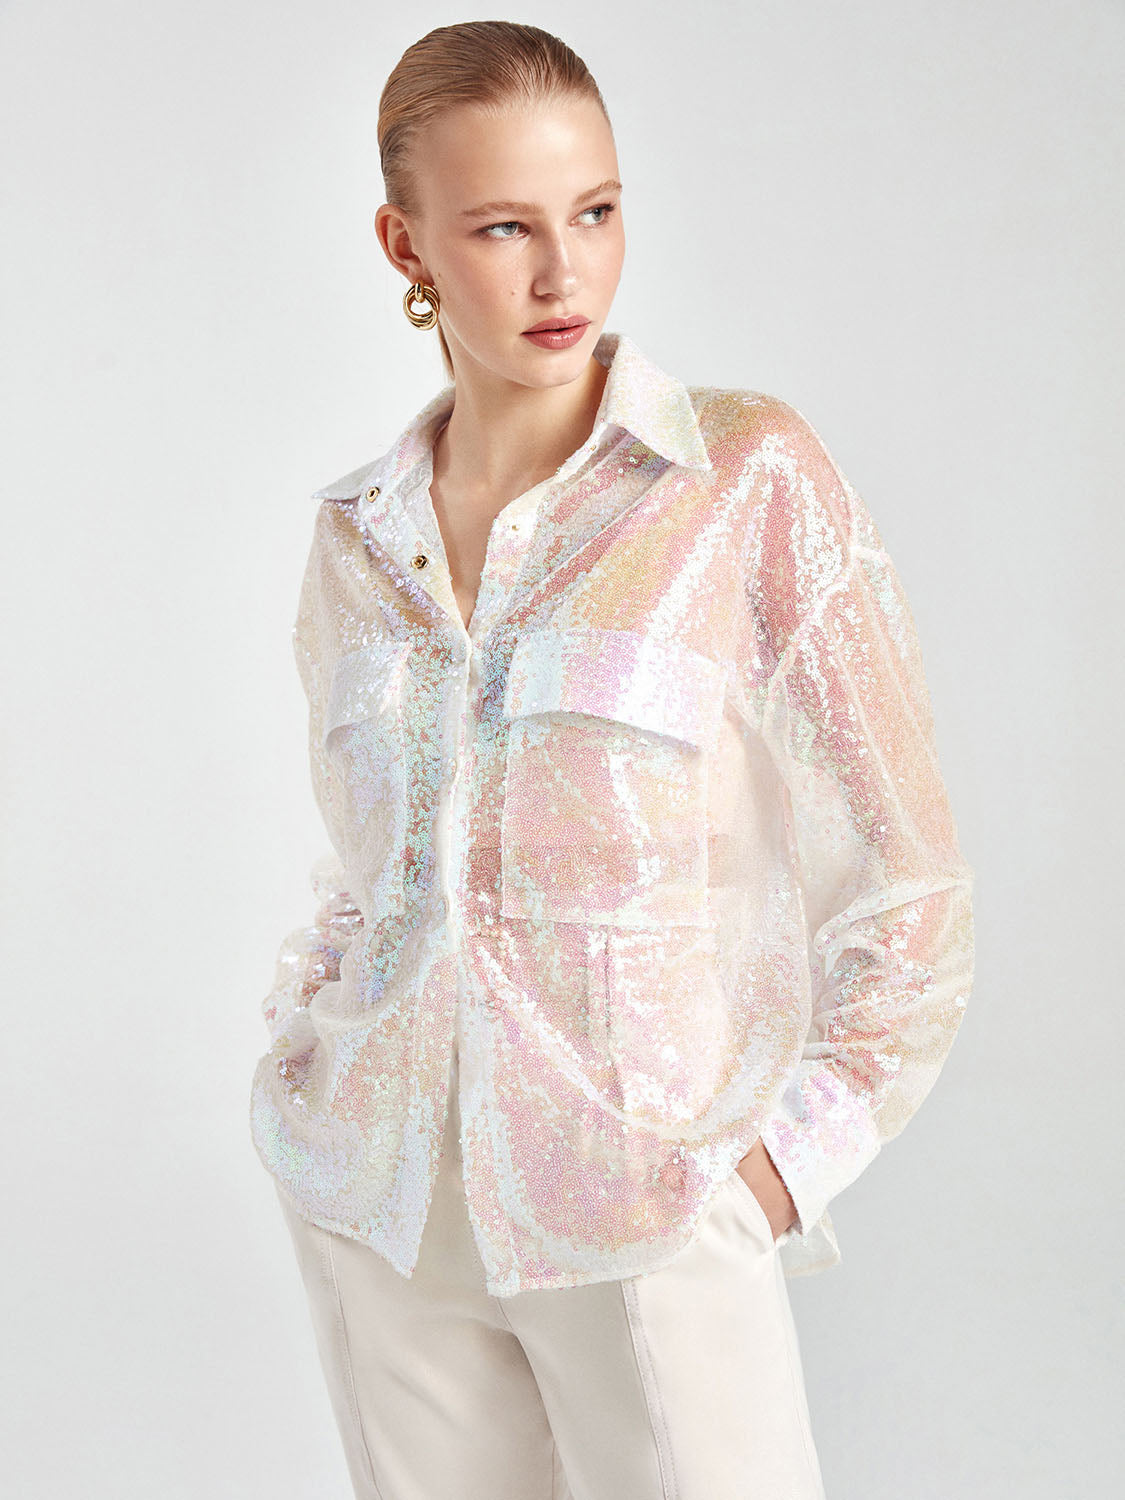 Holographic Sequined Shirt